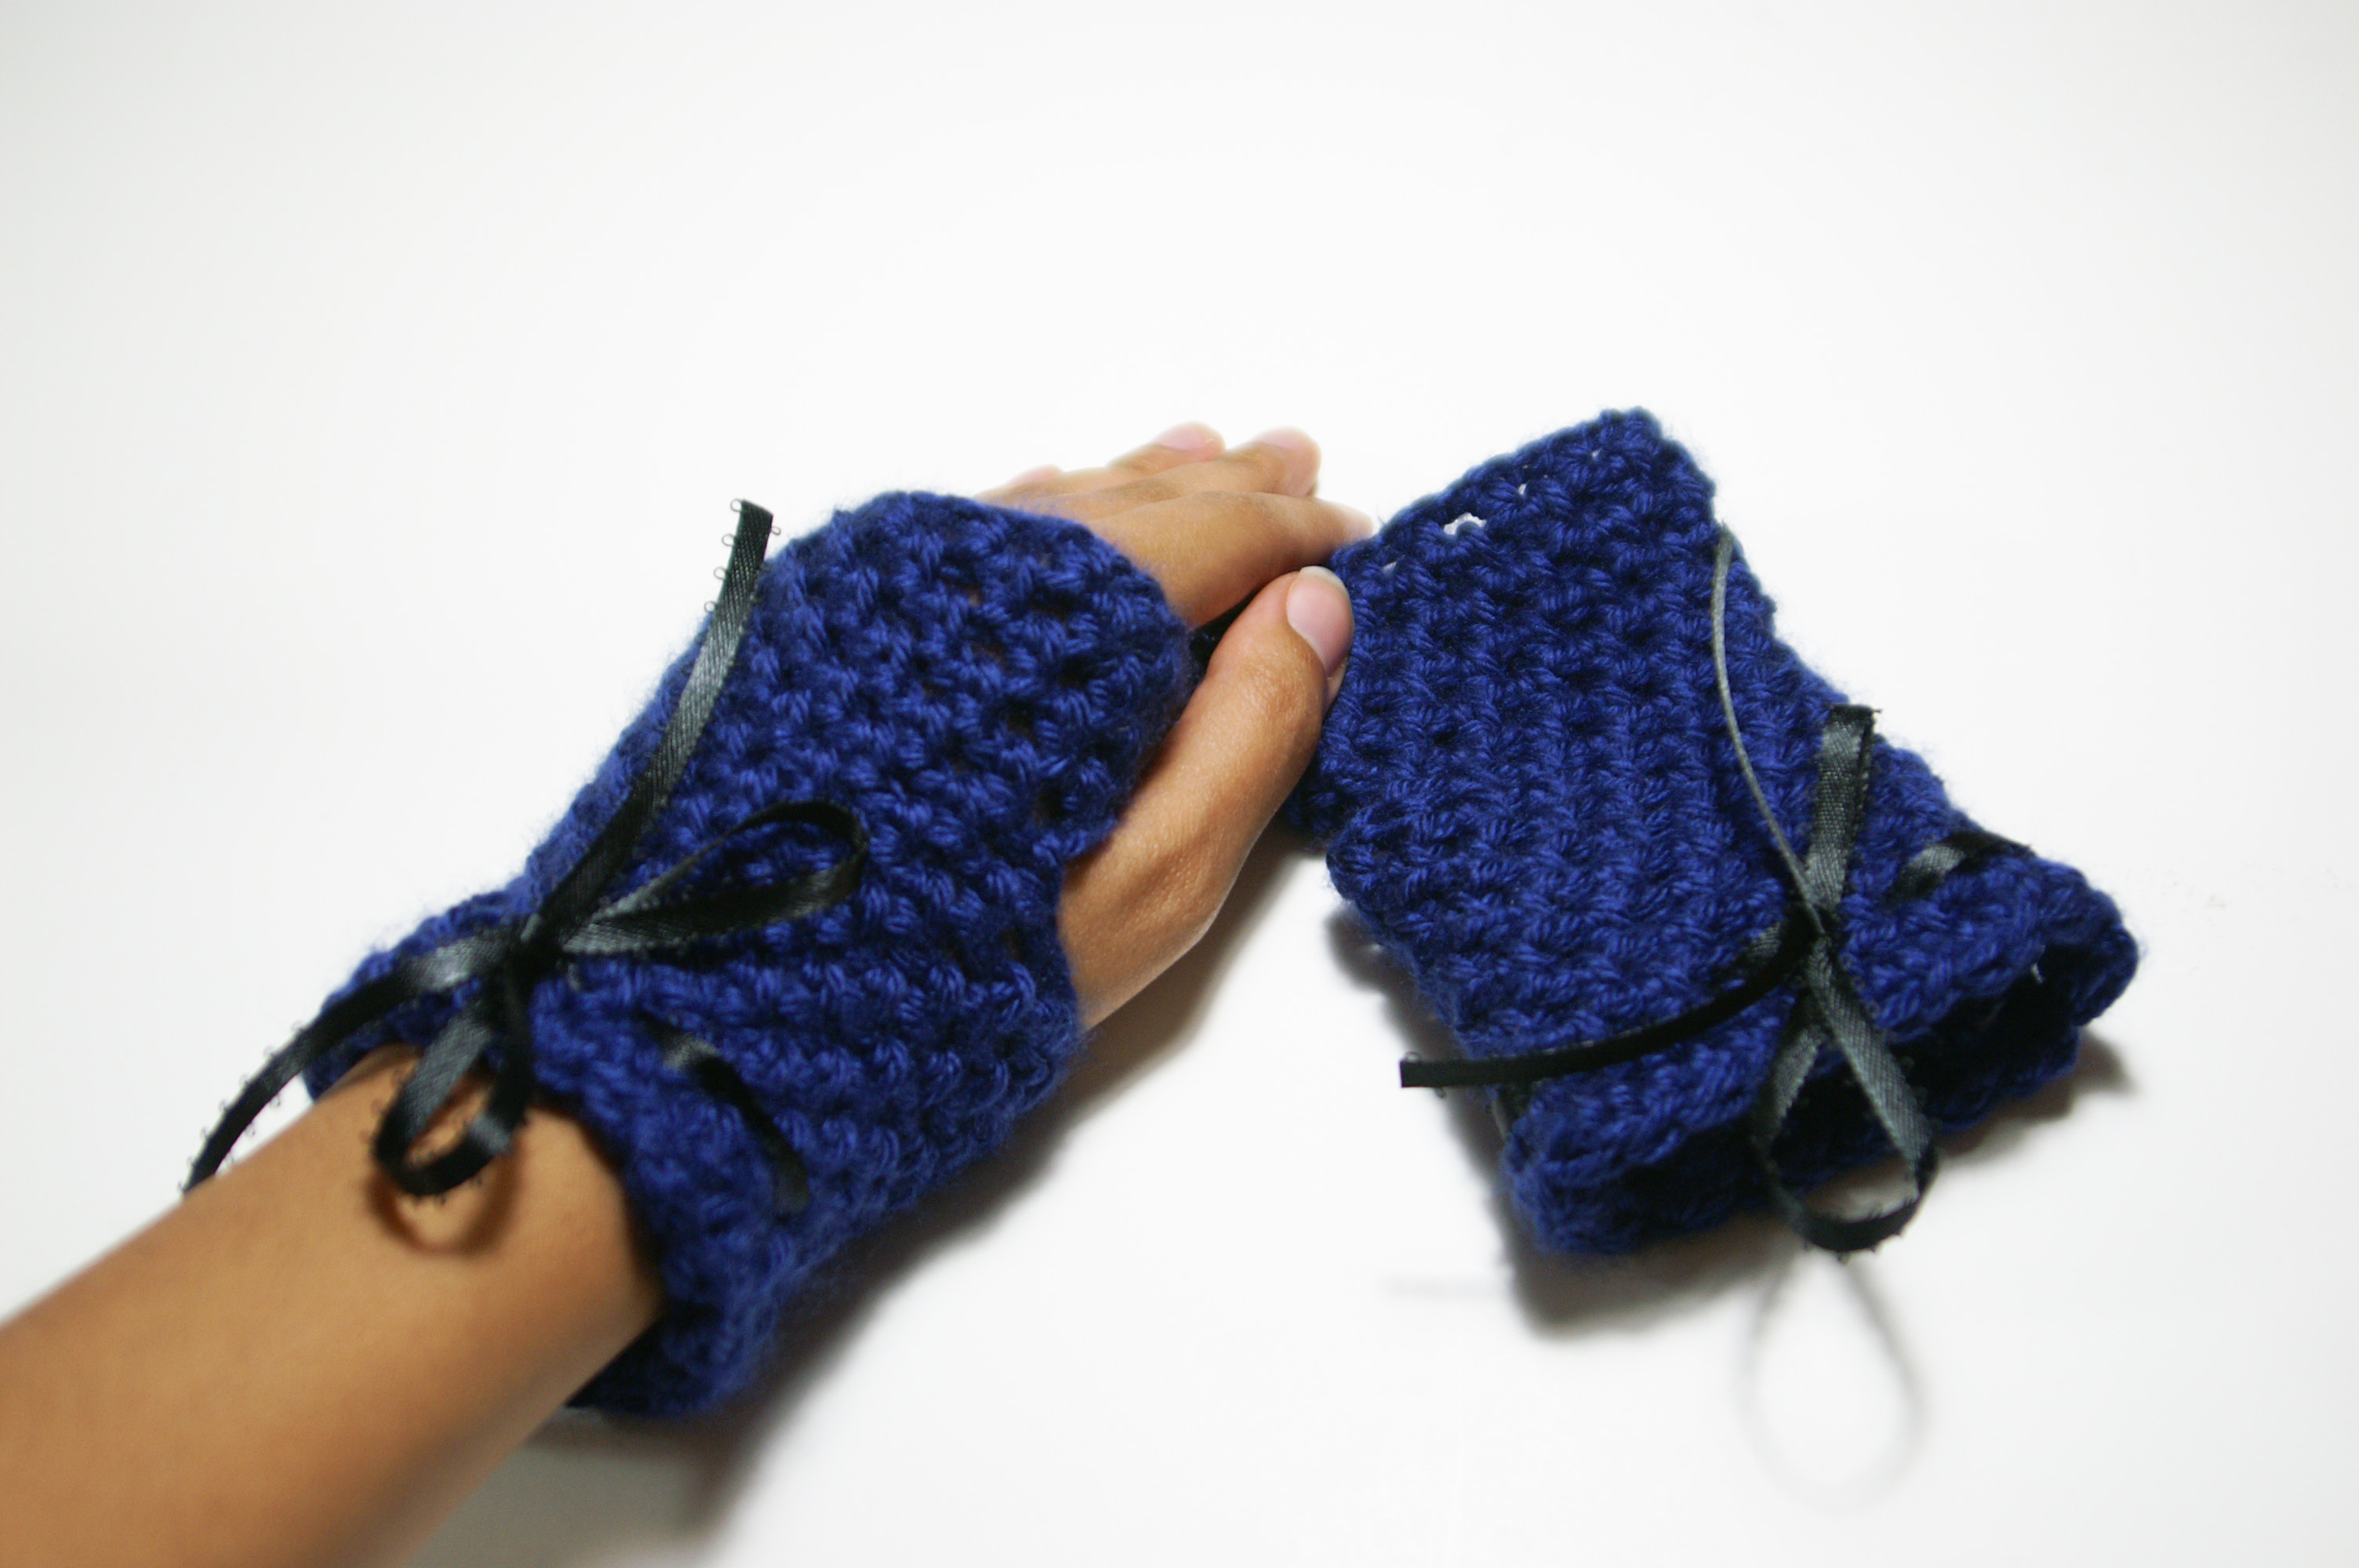 ... addition to my small crochet clothing collection: fingerless gloves